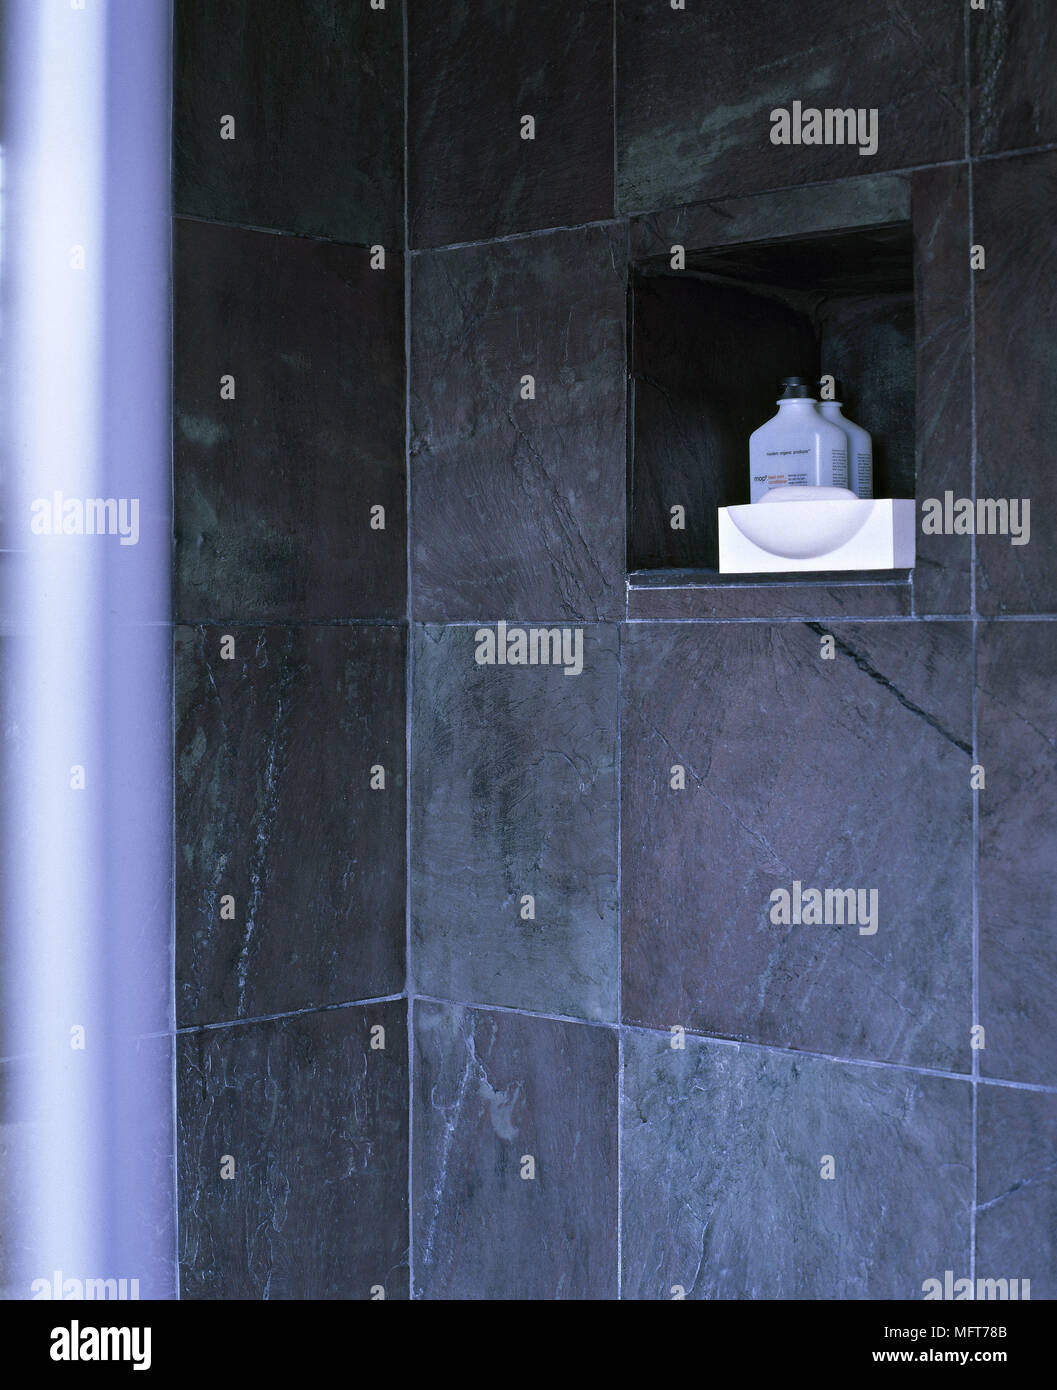 Tiled Cubicle Stock Photos & Tiled Cubicle Stock Images - Alamy